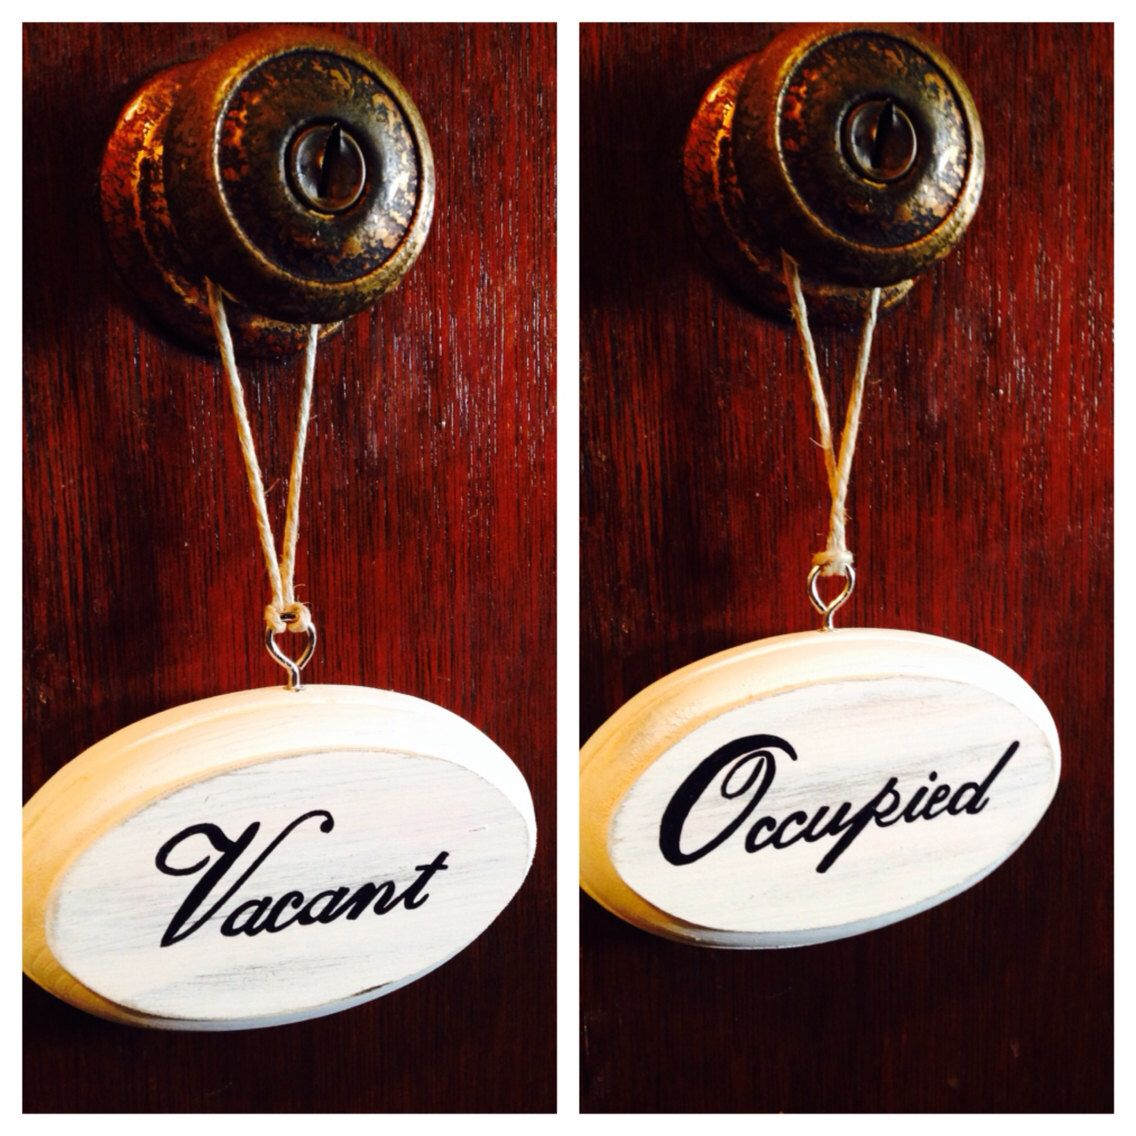 Vacant Occupied Double Sided Bathroom Sign White Bathroom